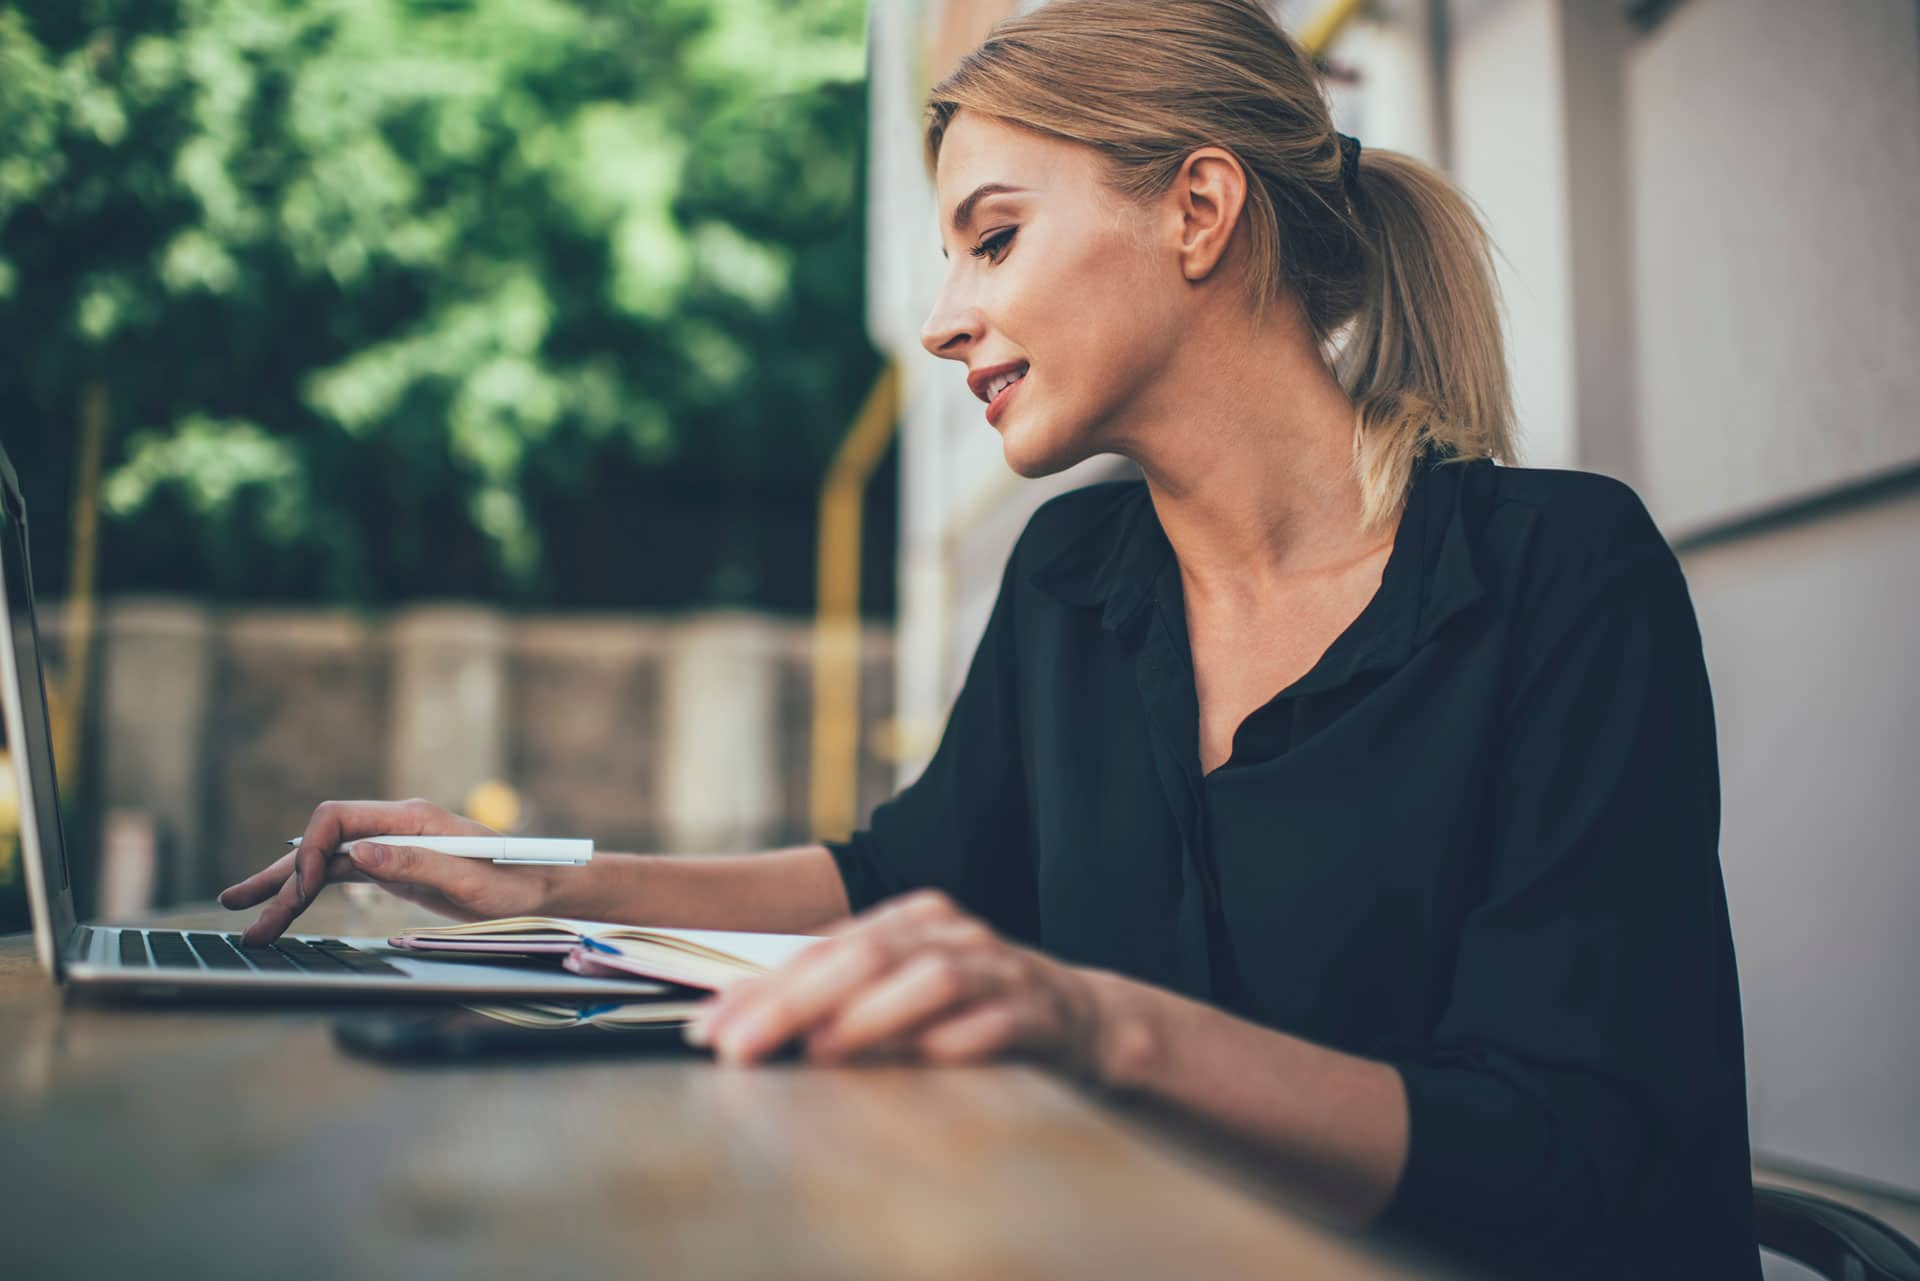 Young woman with blond hair in ponytail and black blouse sitting outside looking at laptop on table, pen in hand